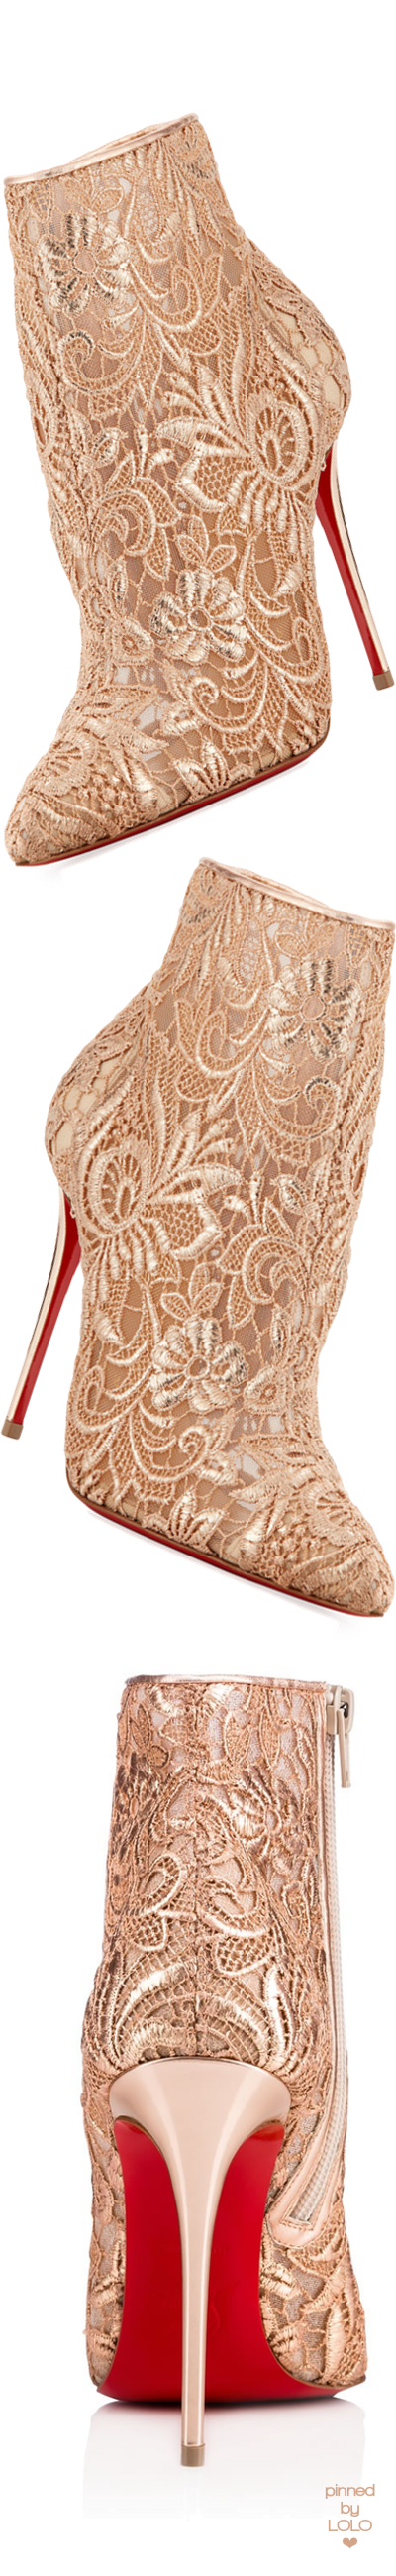 48c1160a990 Christian Louboutin Gipsy Floral-Lace Red Sole Bootie Bolsas